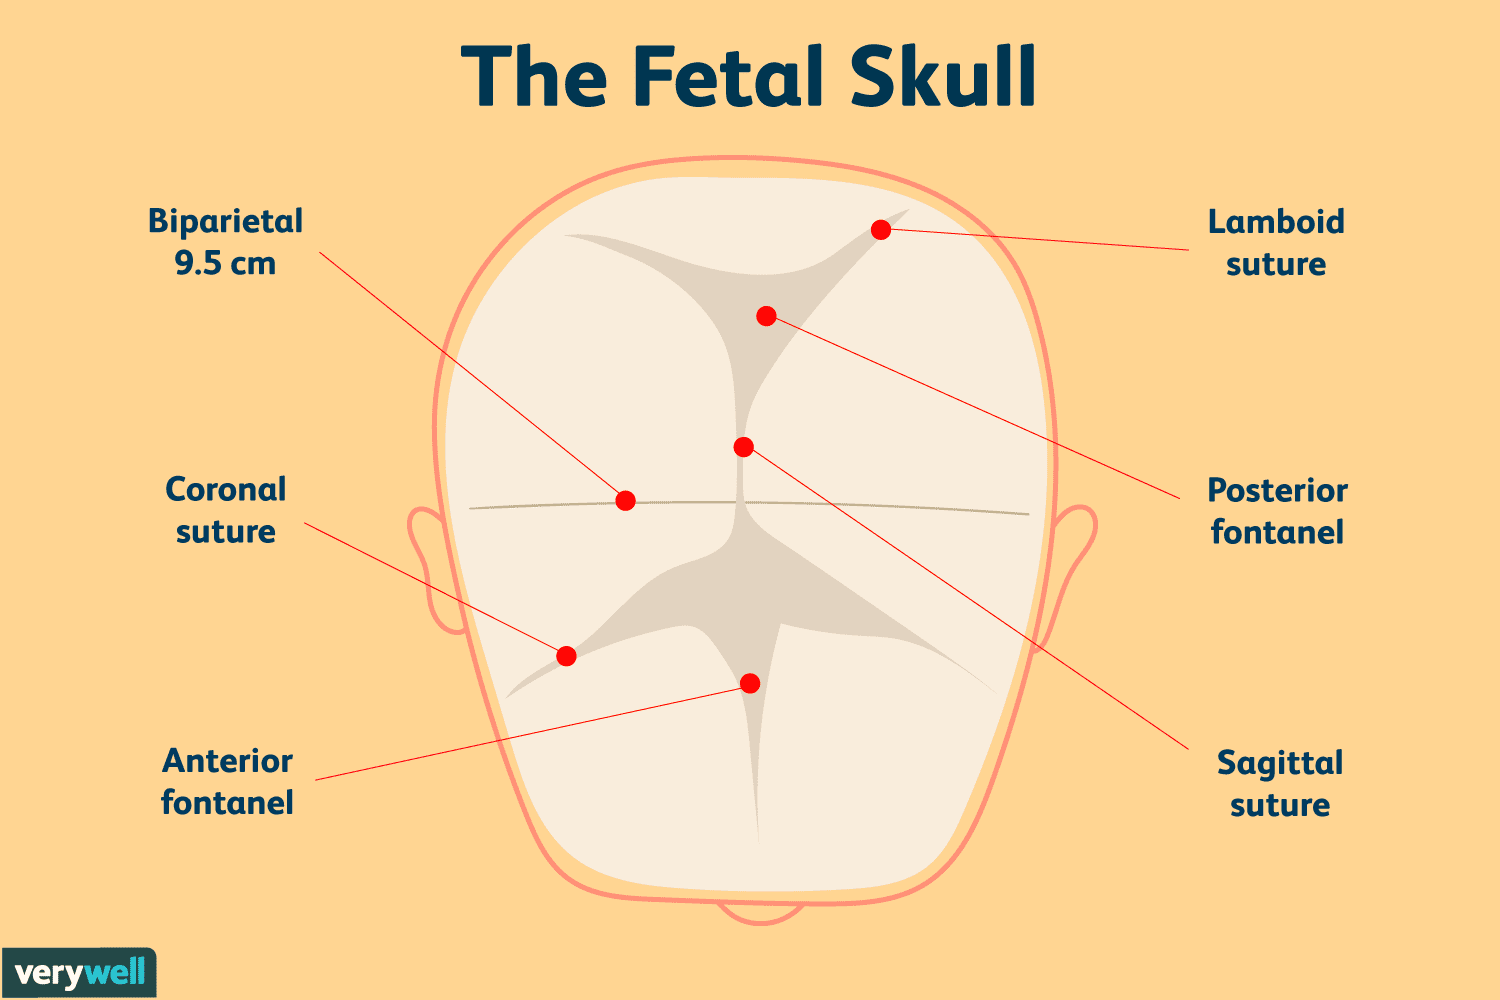 parts of the fetal skull